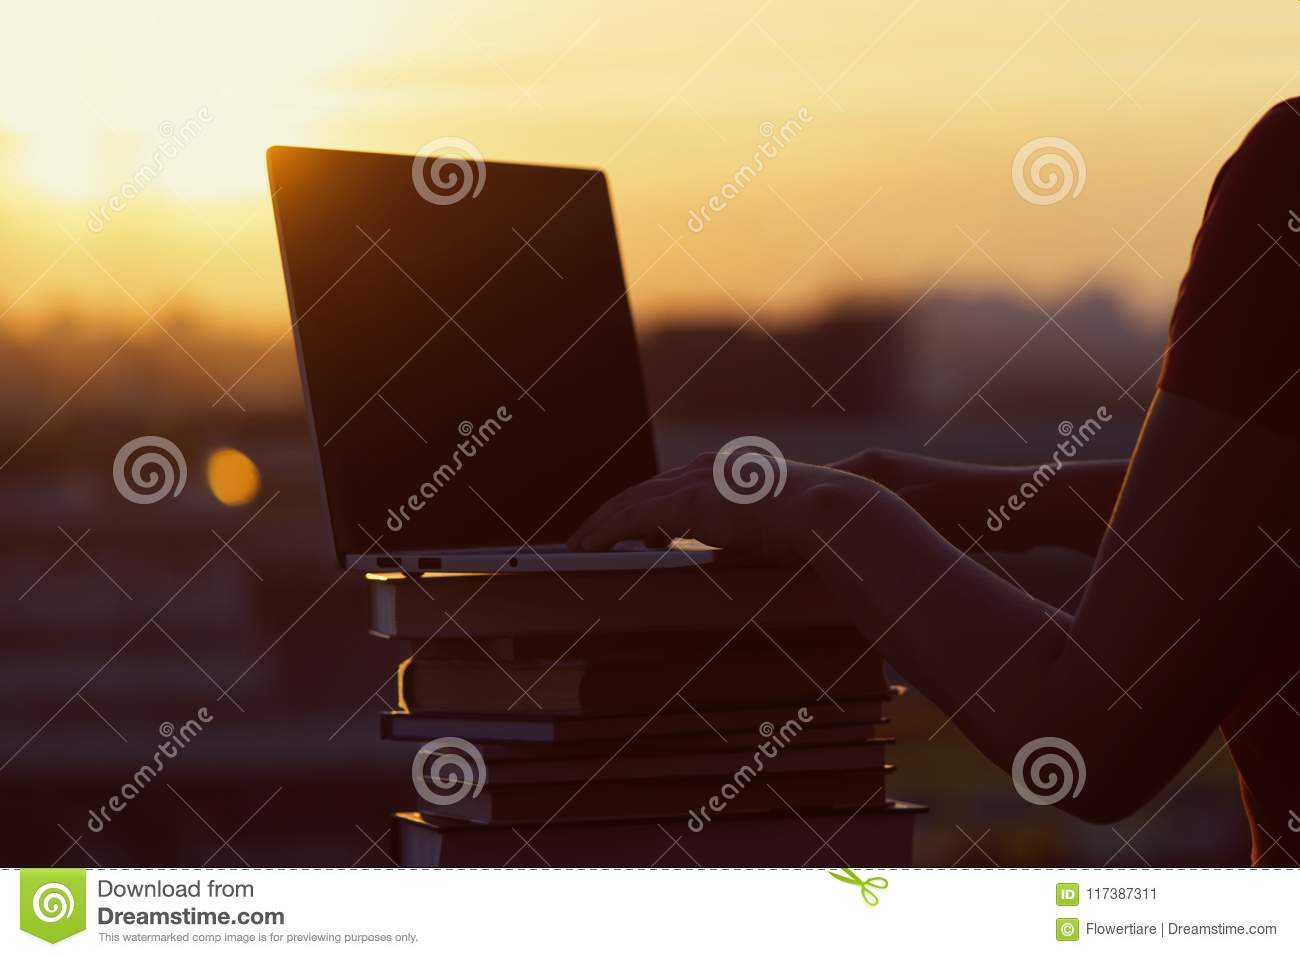 Girl with a lot of books and laptop on sunset background. Preparation for university exams. education concept